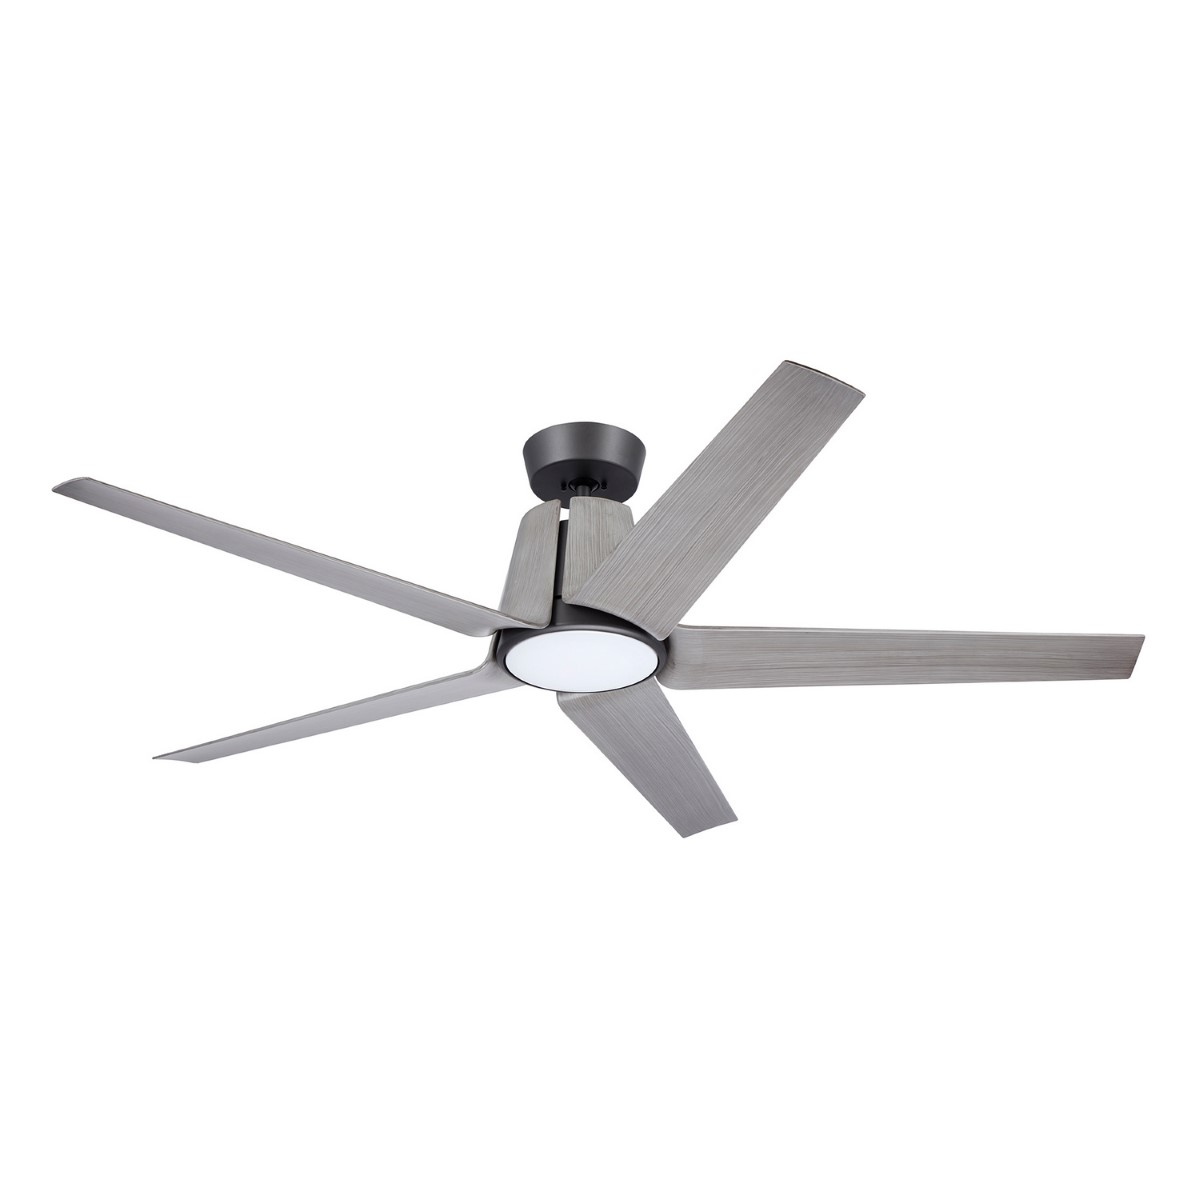 Emerson Floret Eco Graphite Ceiling Fan